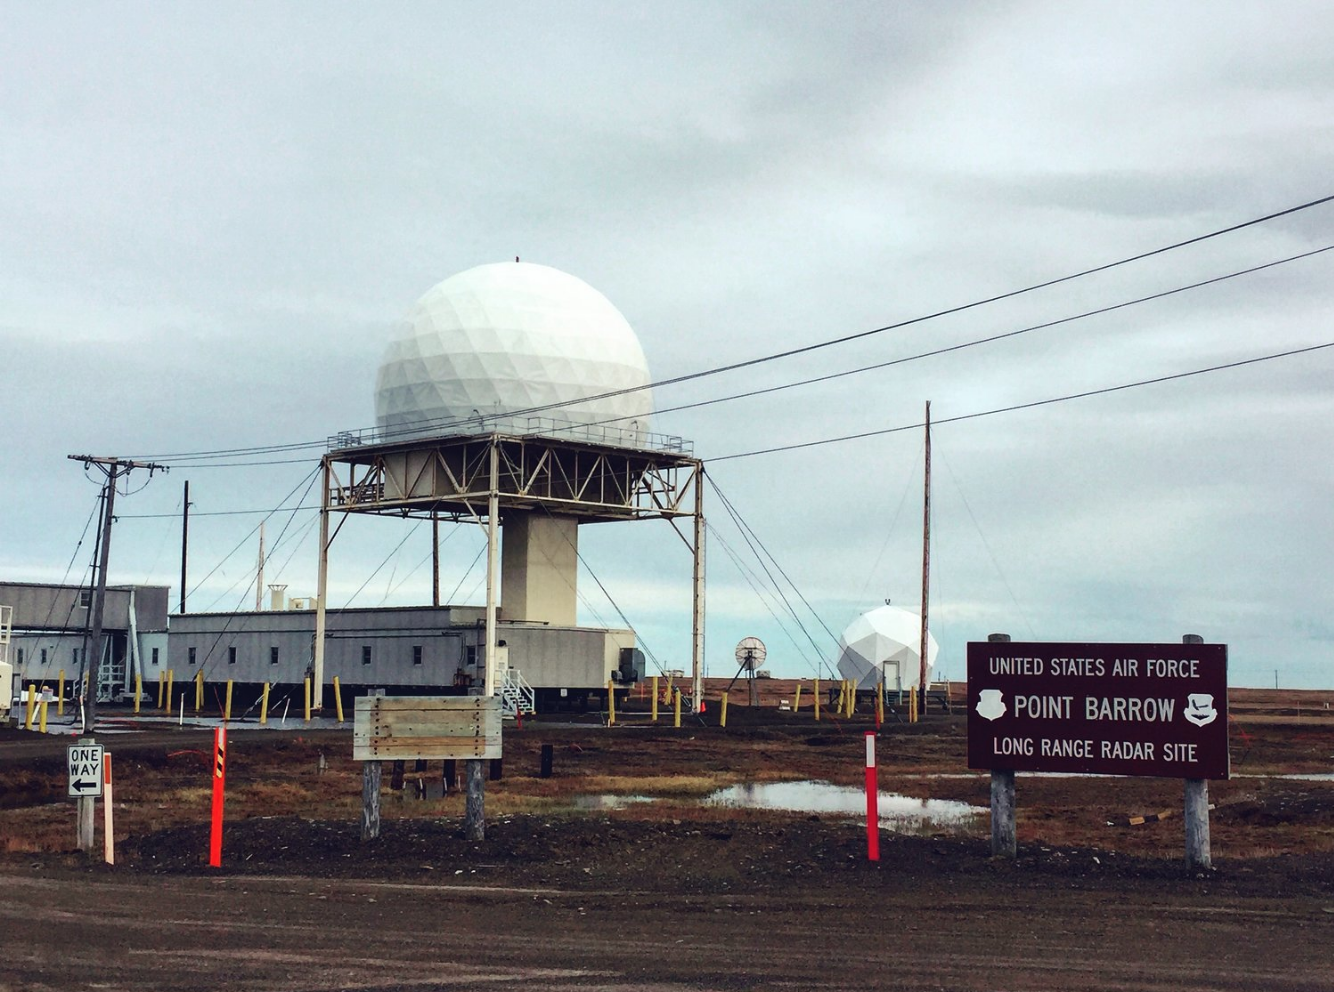 The Distant Early Warning Line Radar Site at Point Barrow, Alaska  Photo by Tess Lanzarotta, 2017